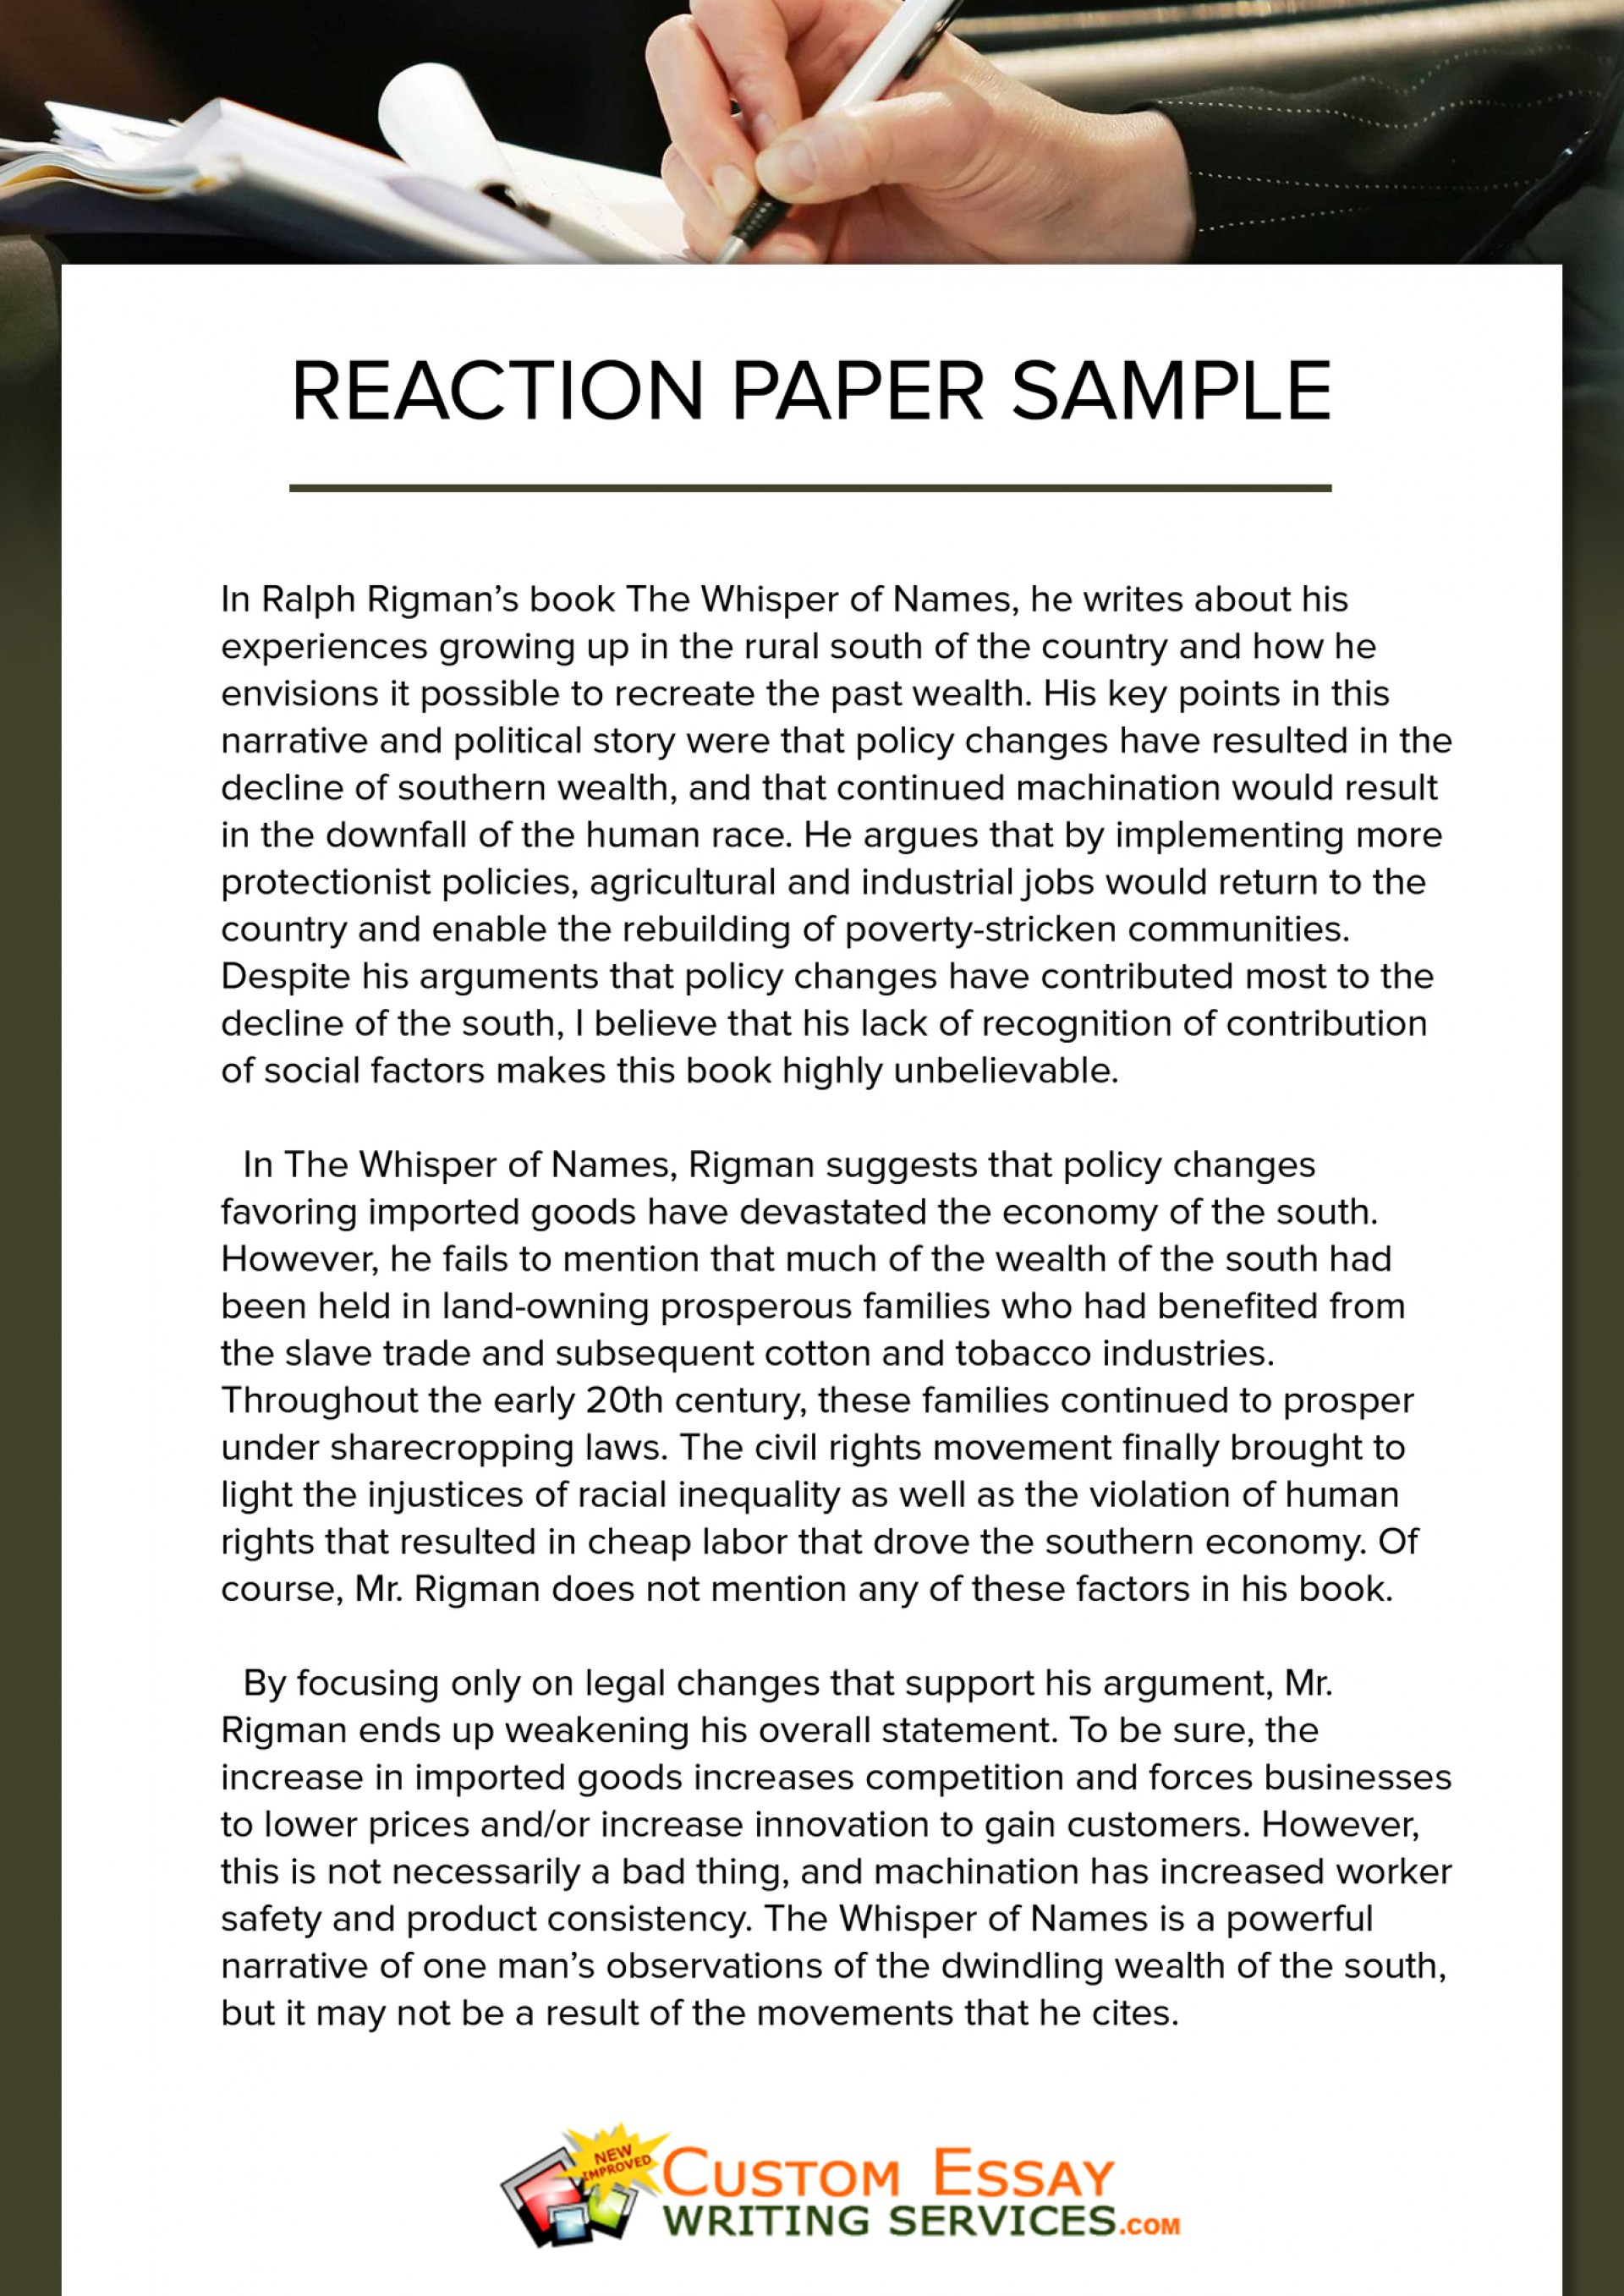 003 Writing Reaction Paper Sample Essay Top Example 1920